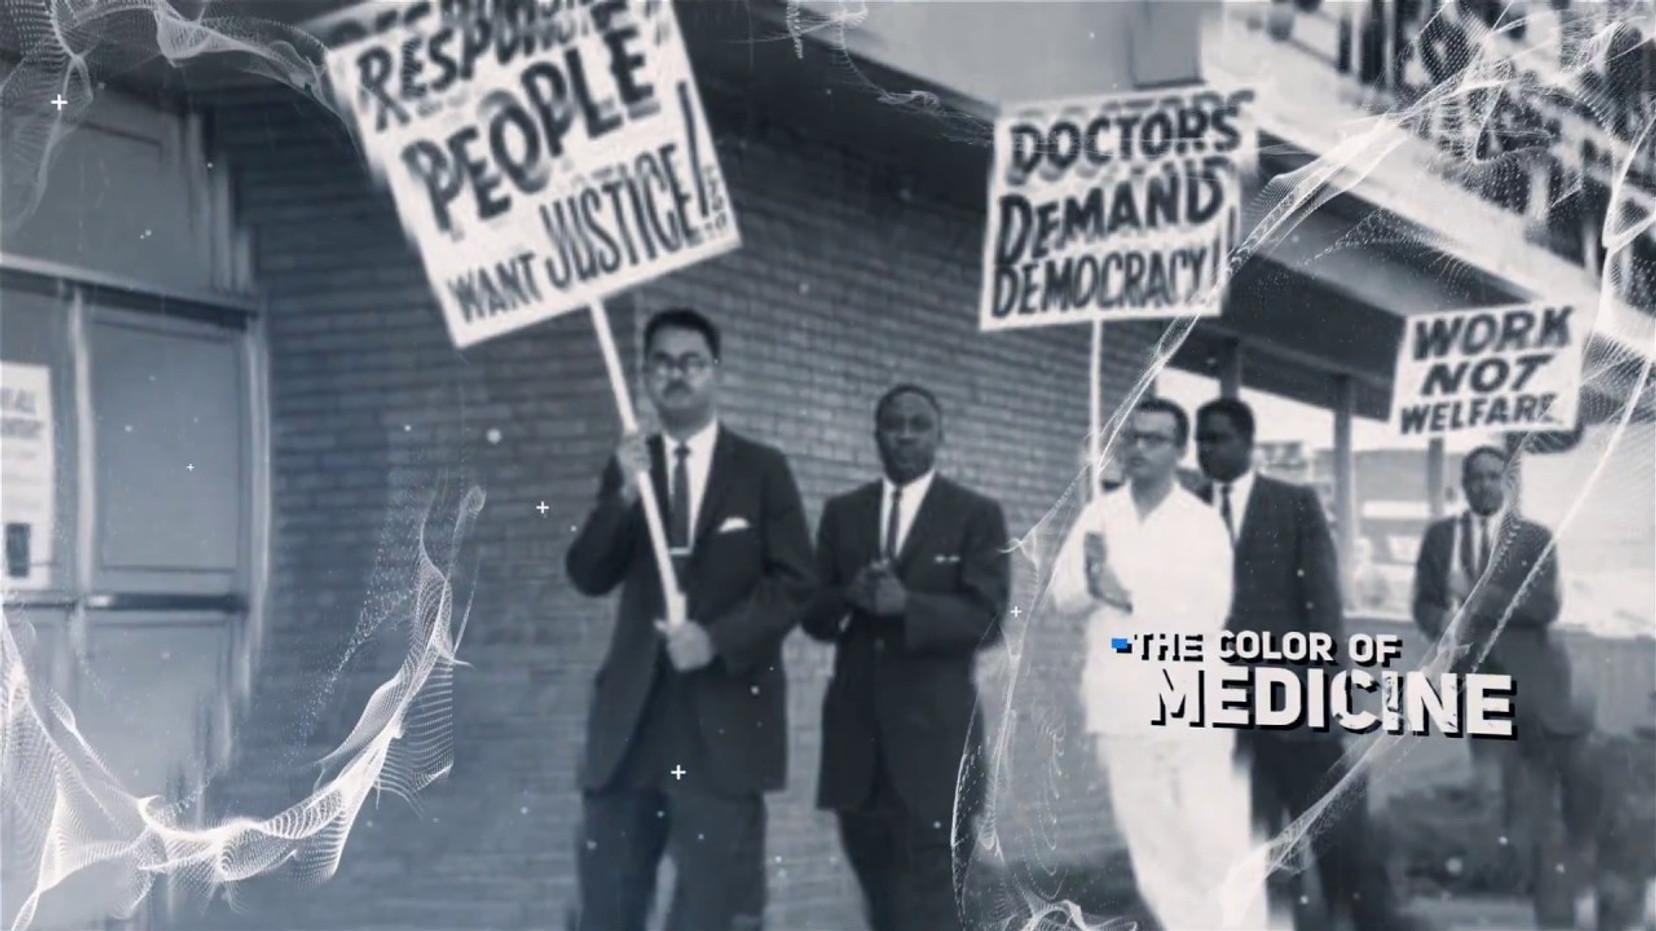 The Color of Medicine 2nd Trailer